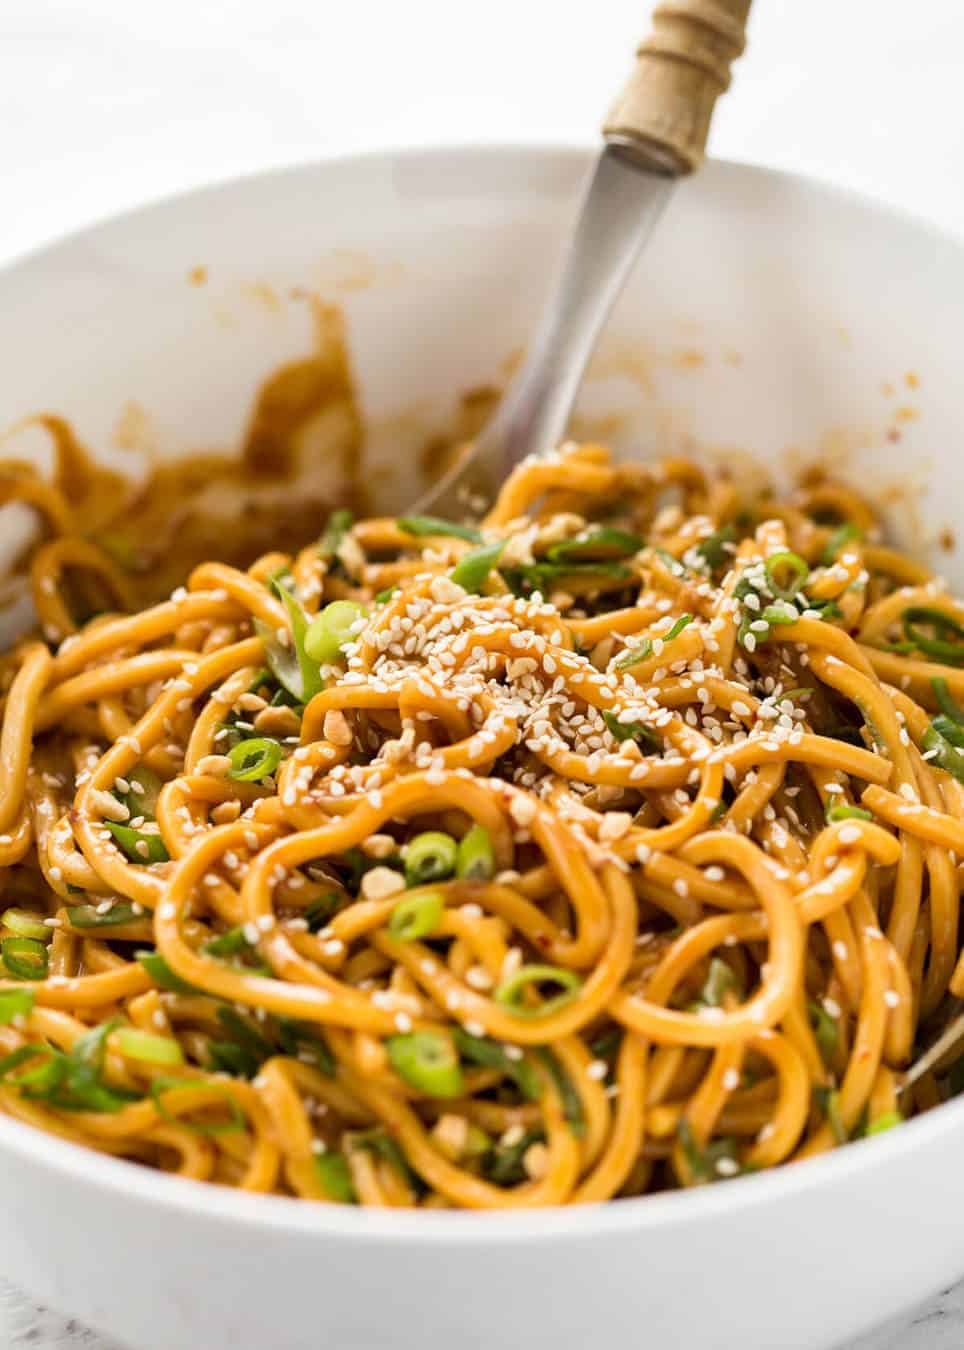 Sesame Noodles - noodles tossed with a wicked Asian Sesame Peanut Dressing. Serve these as Cold Sesame Noodles or warm. www.recipetineats.com